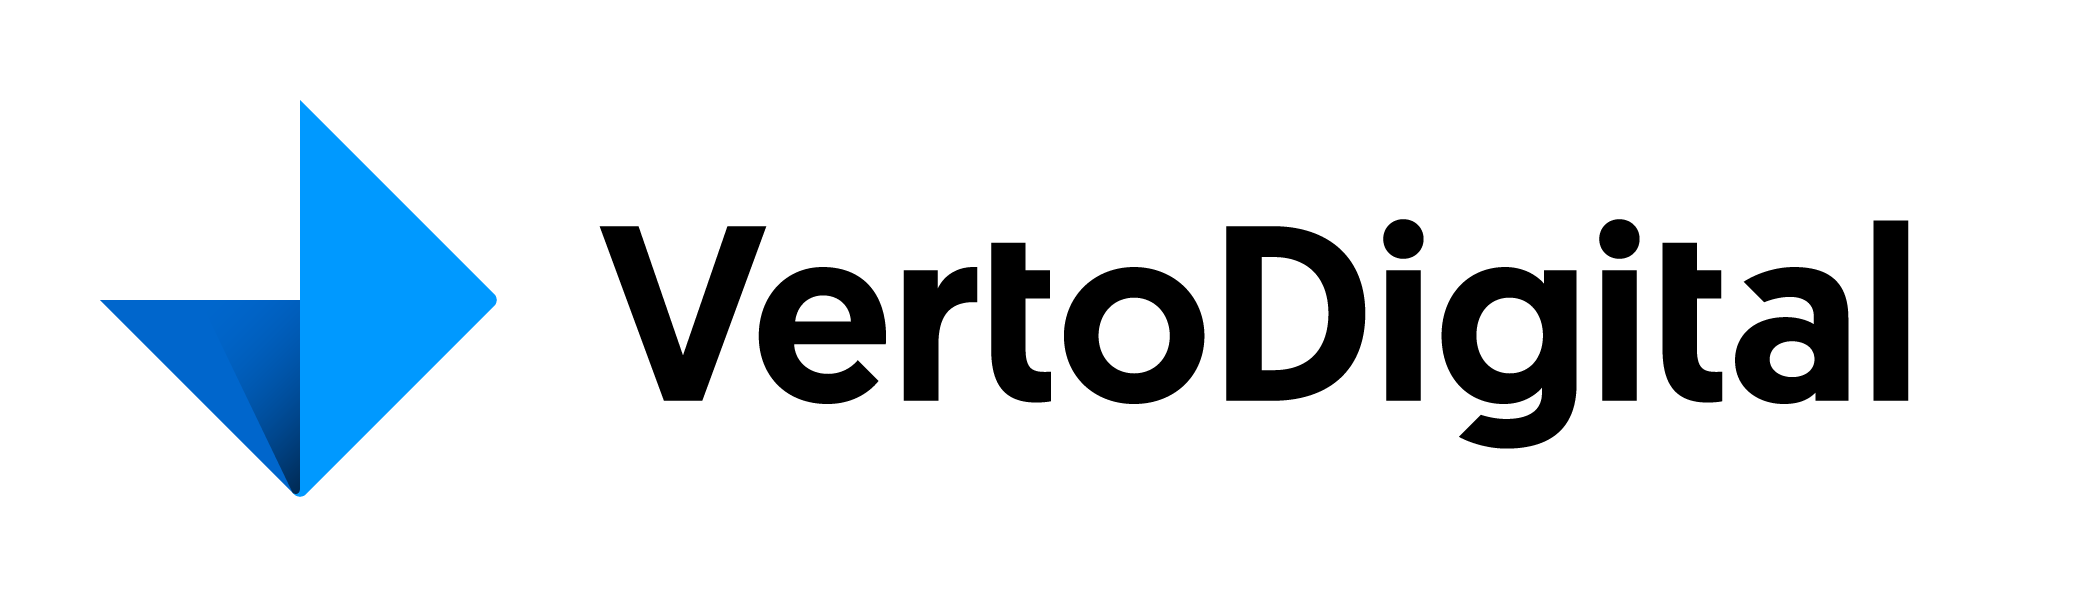 VertoDigital_brandmark-color-black (2).png